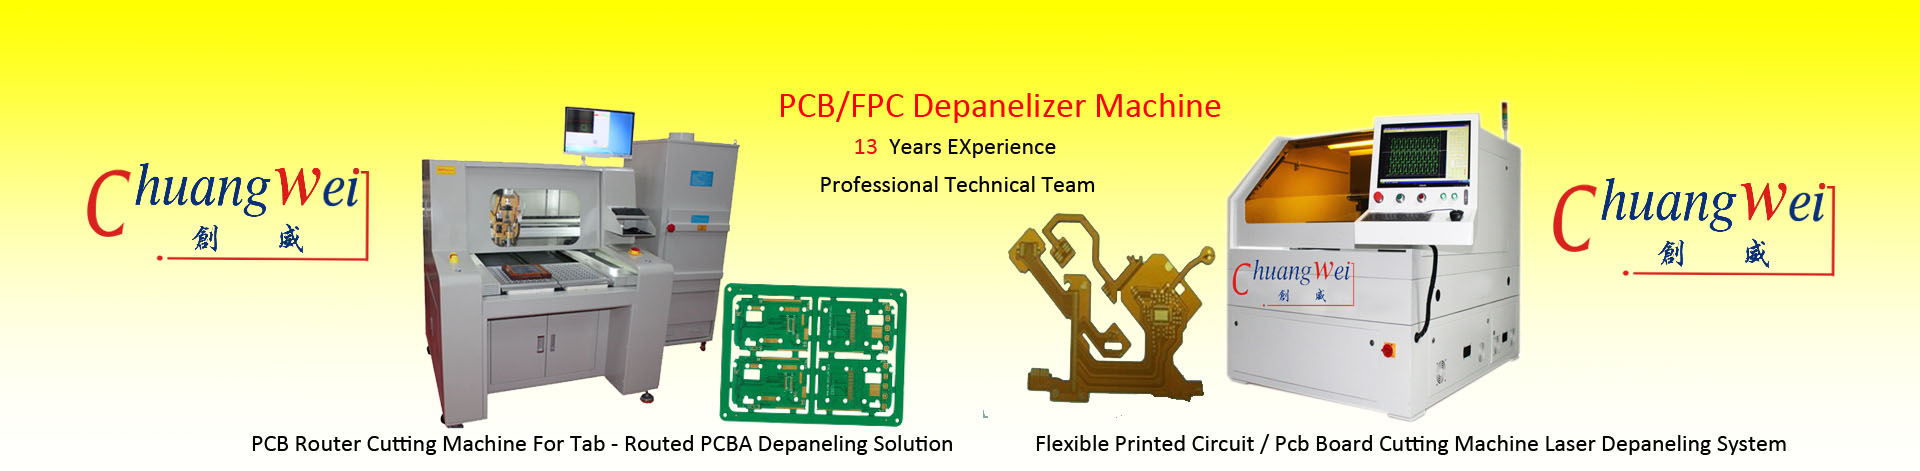 PCB Router Depanelizer Machine